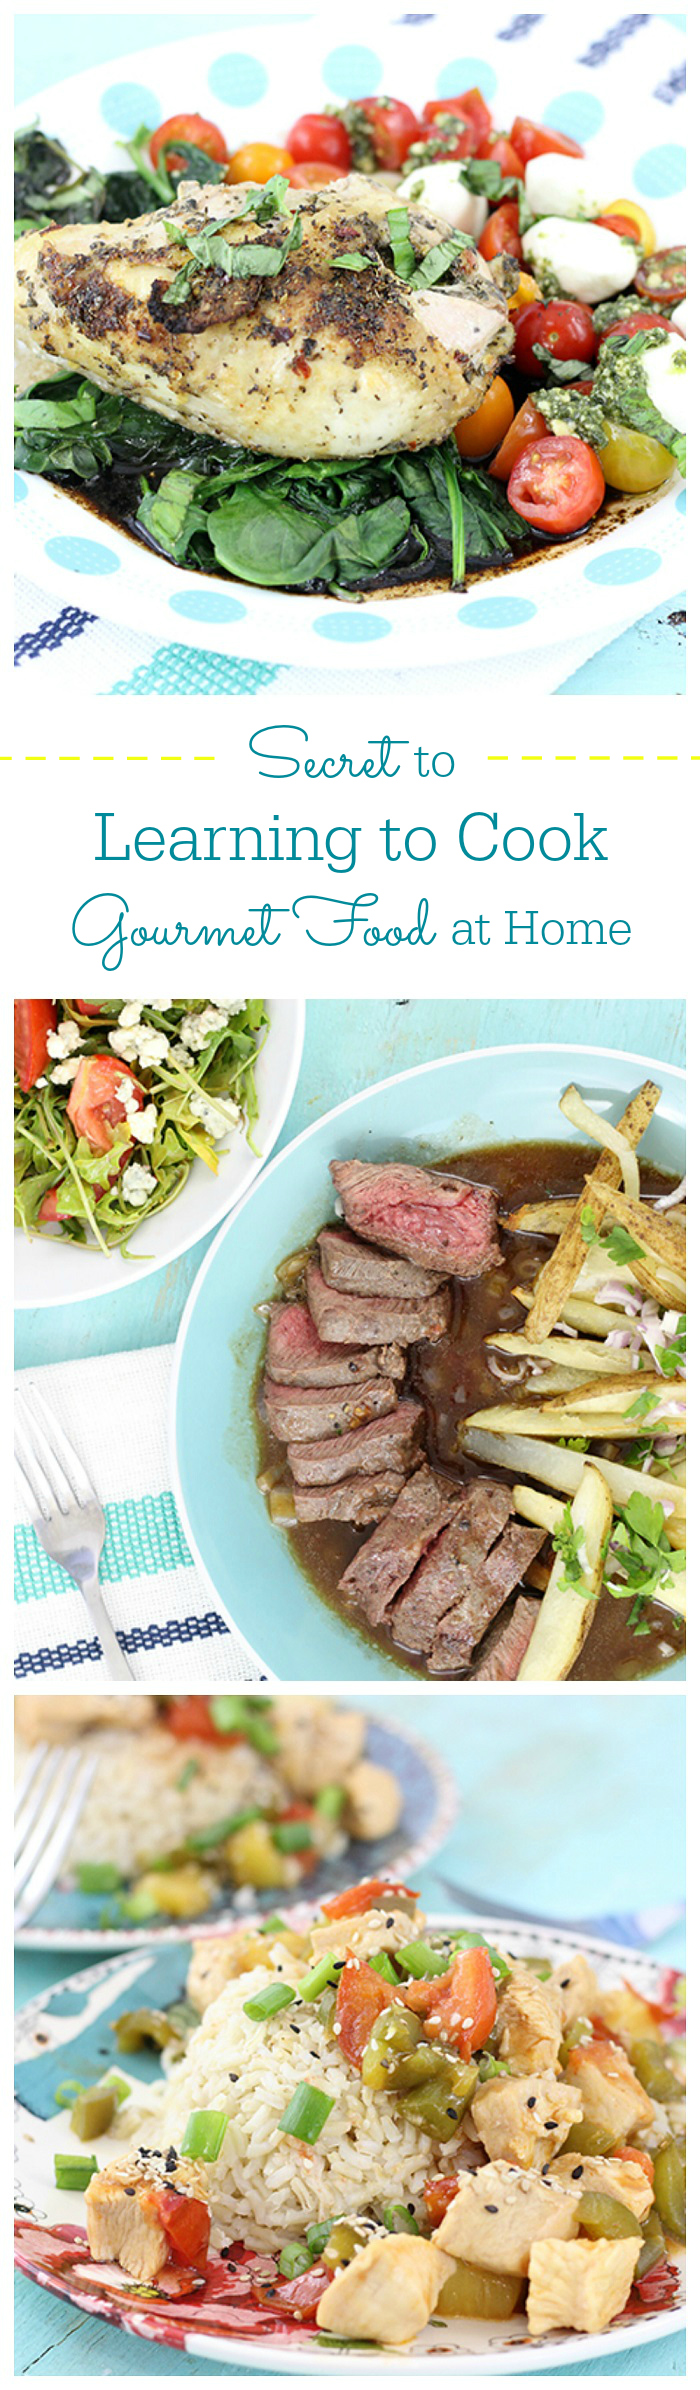 Secret to learning to cook gourmet food at home for Gourmet meals to make at home